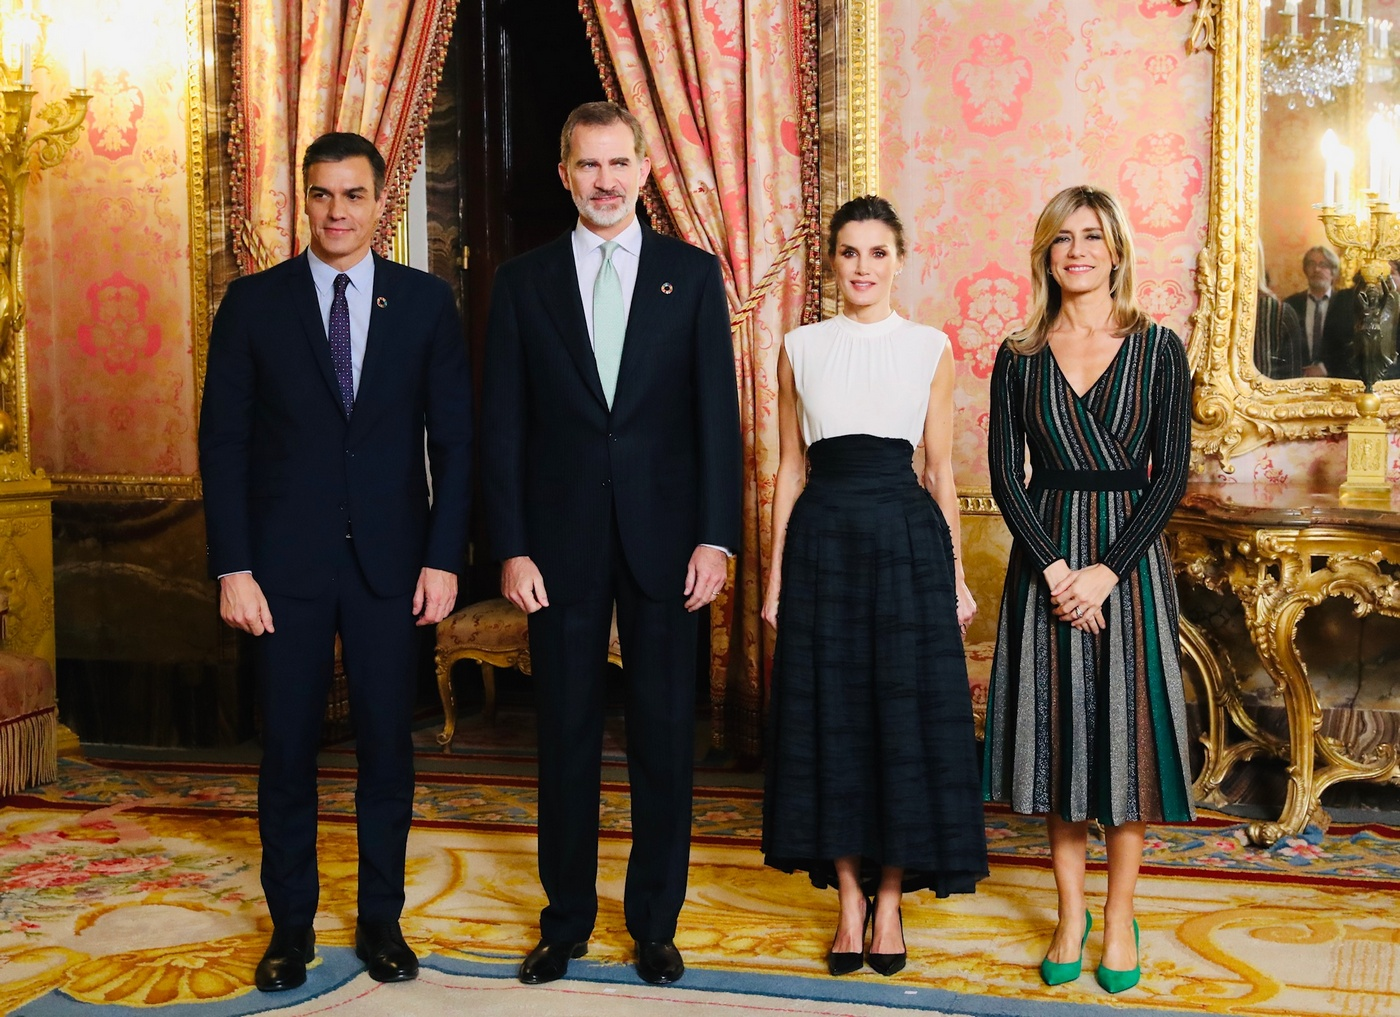 King Felipe and Queen Letizia of Spain hosted a reception for the United Nations Conference on Climate Change (COP25) attendees